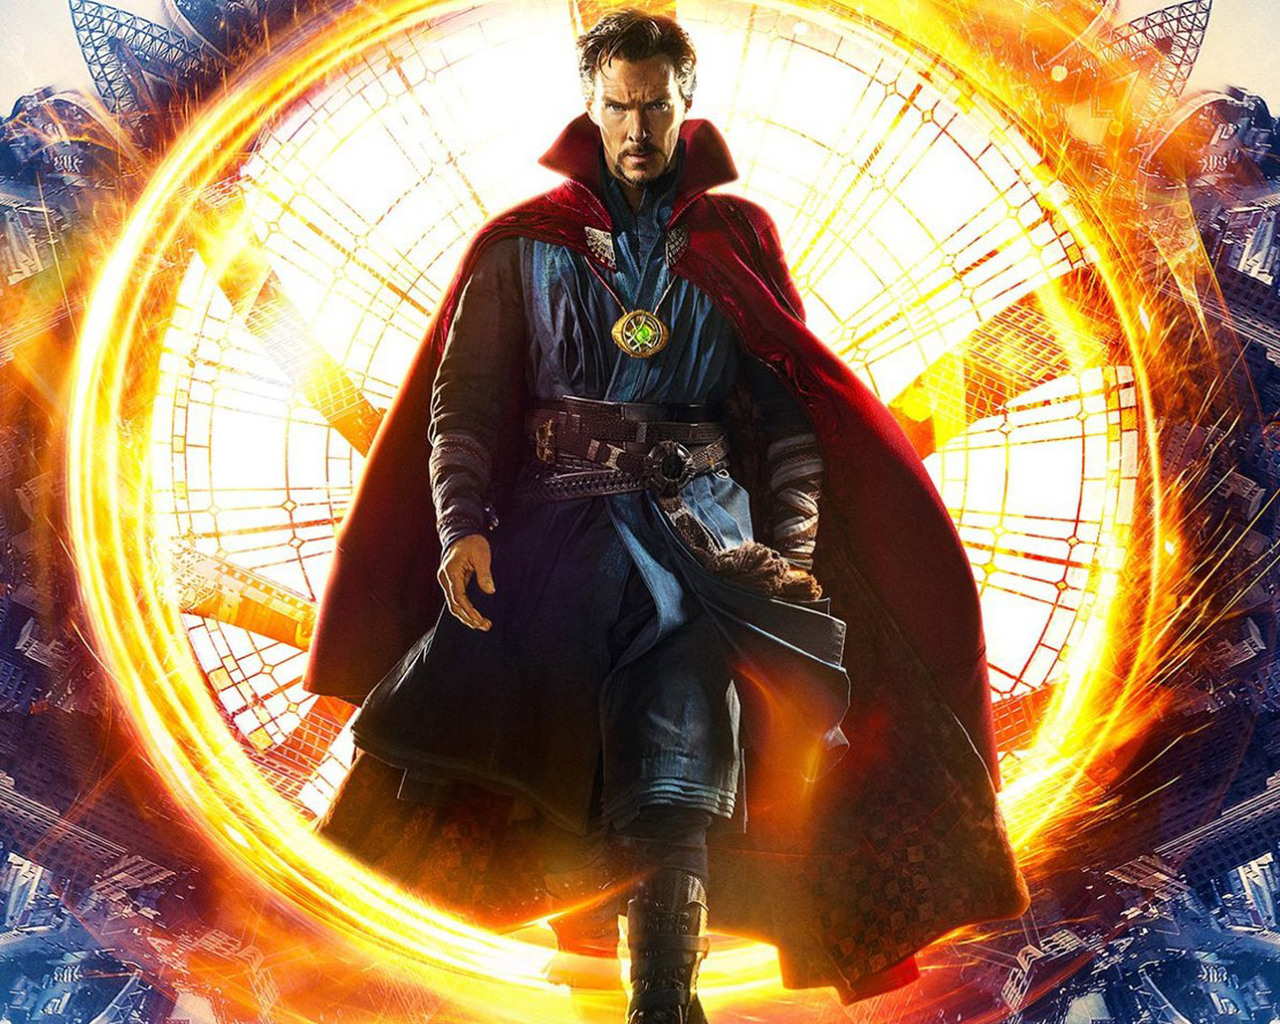 1280x1024 Doctor Strange 2016 1280x1024 Resolution Hd 4k Wallpapers Images Backgrounds Photos And Pictures